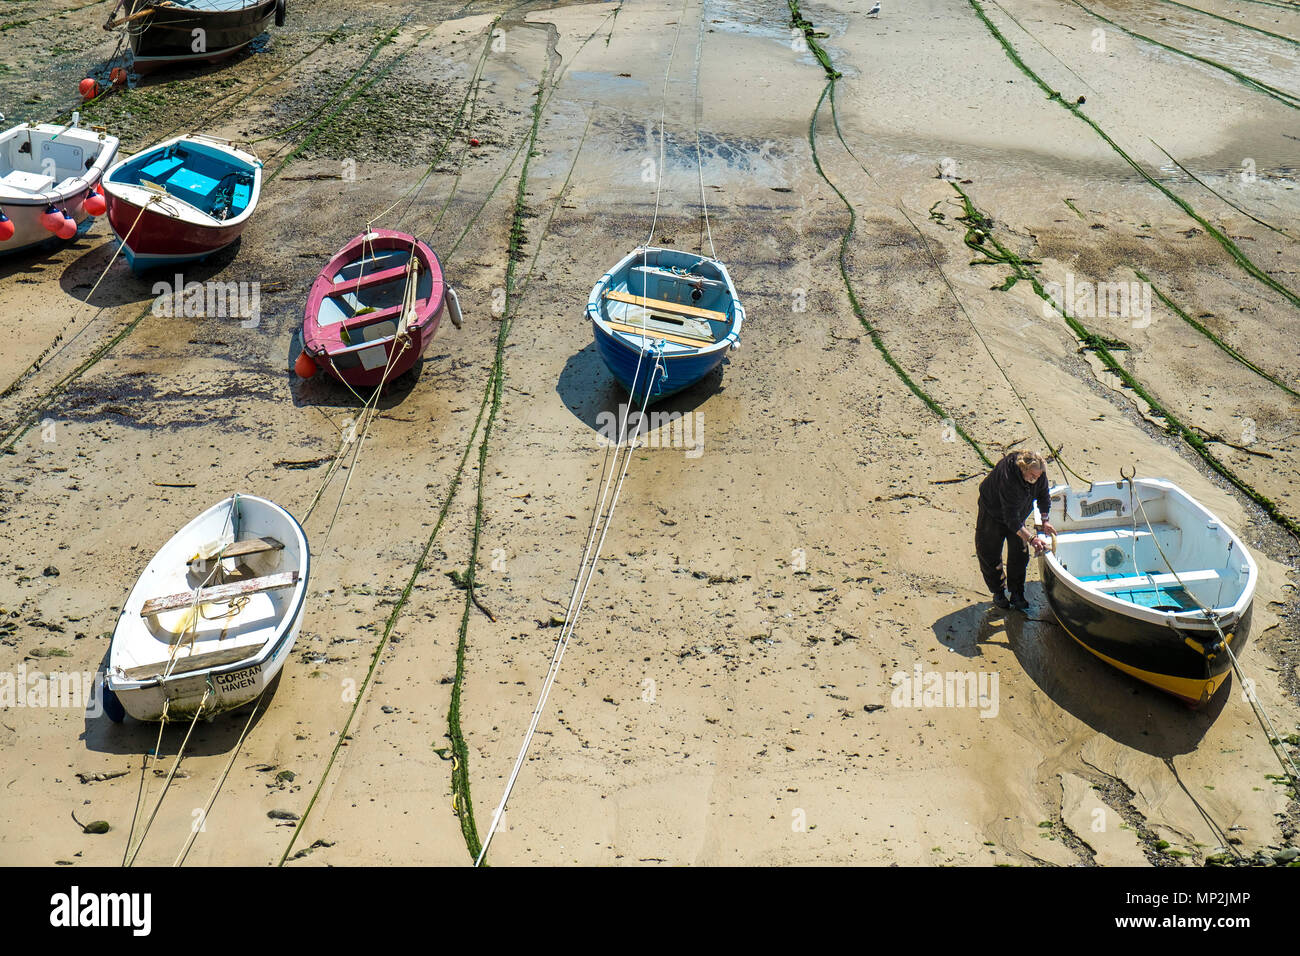 Dinghies tied up at low tide in Mousehole Harbour in Cornwall. - Stock Image